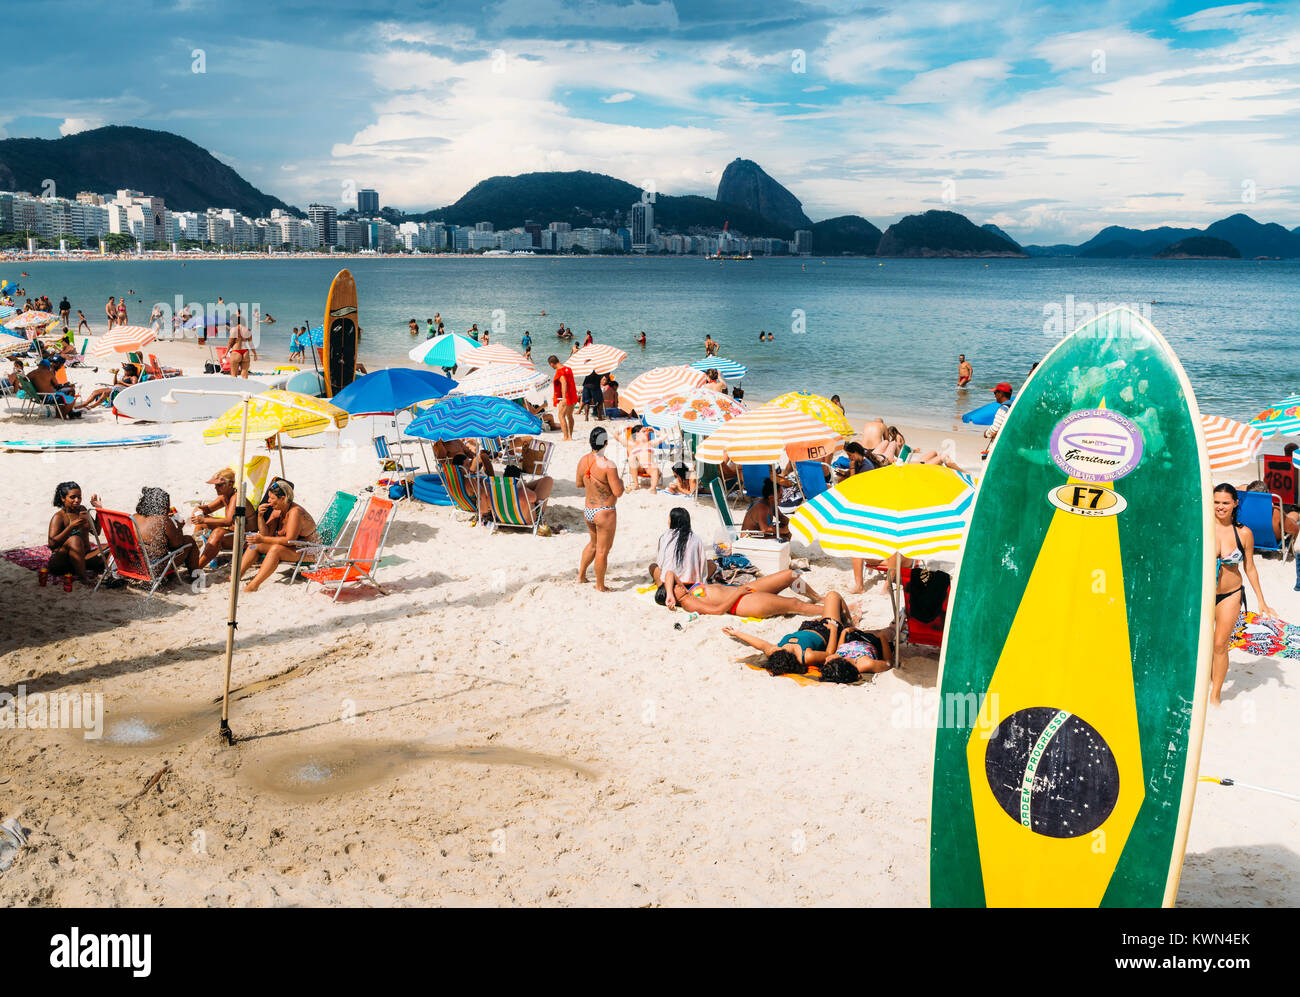 Long board with a Brazilian flag on Copacabana Beach, Rio de Janeiro, Brazil - Stock Image